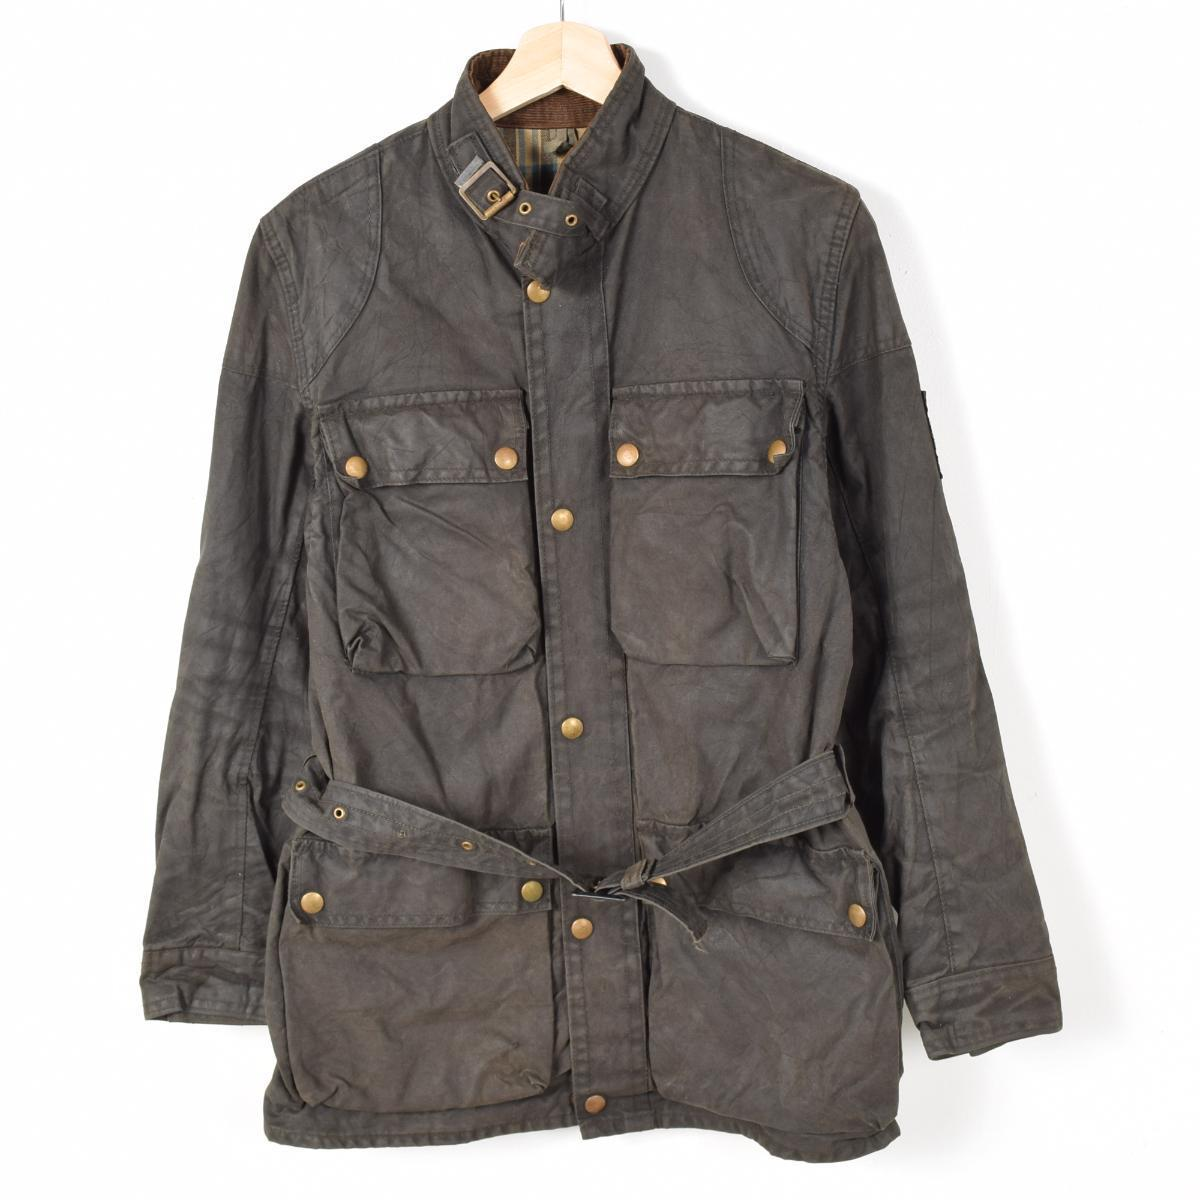 6dc958d74bc0 Belstaff TRIALMASTER Professional trialmasterprofectional United Kingdom  made of waxed cotton oiled jacket mens L vintage Belstaff  weu6201